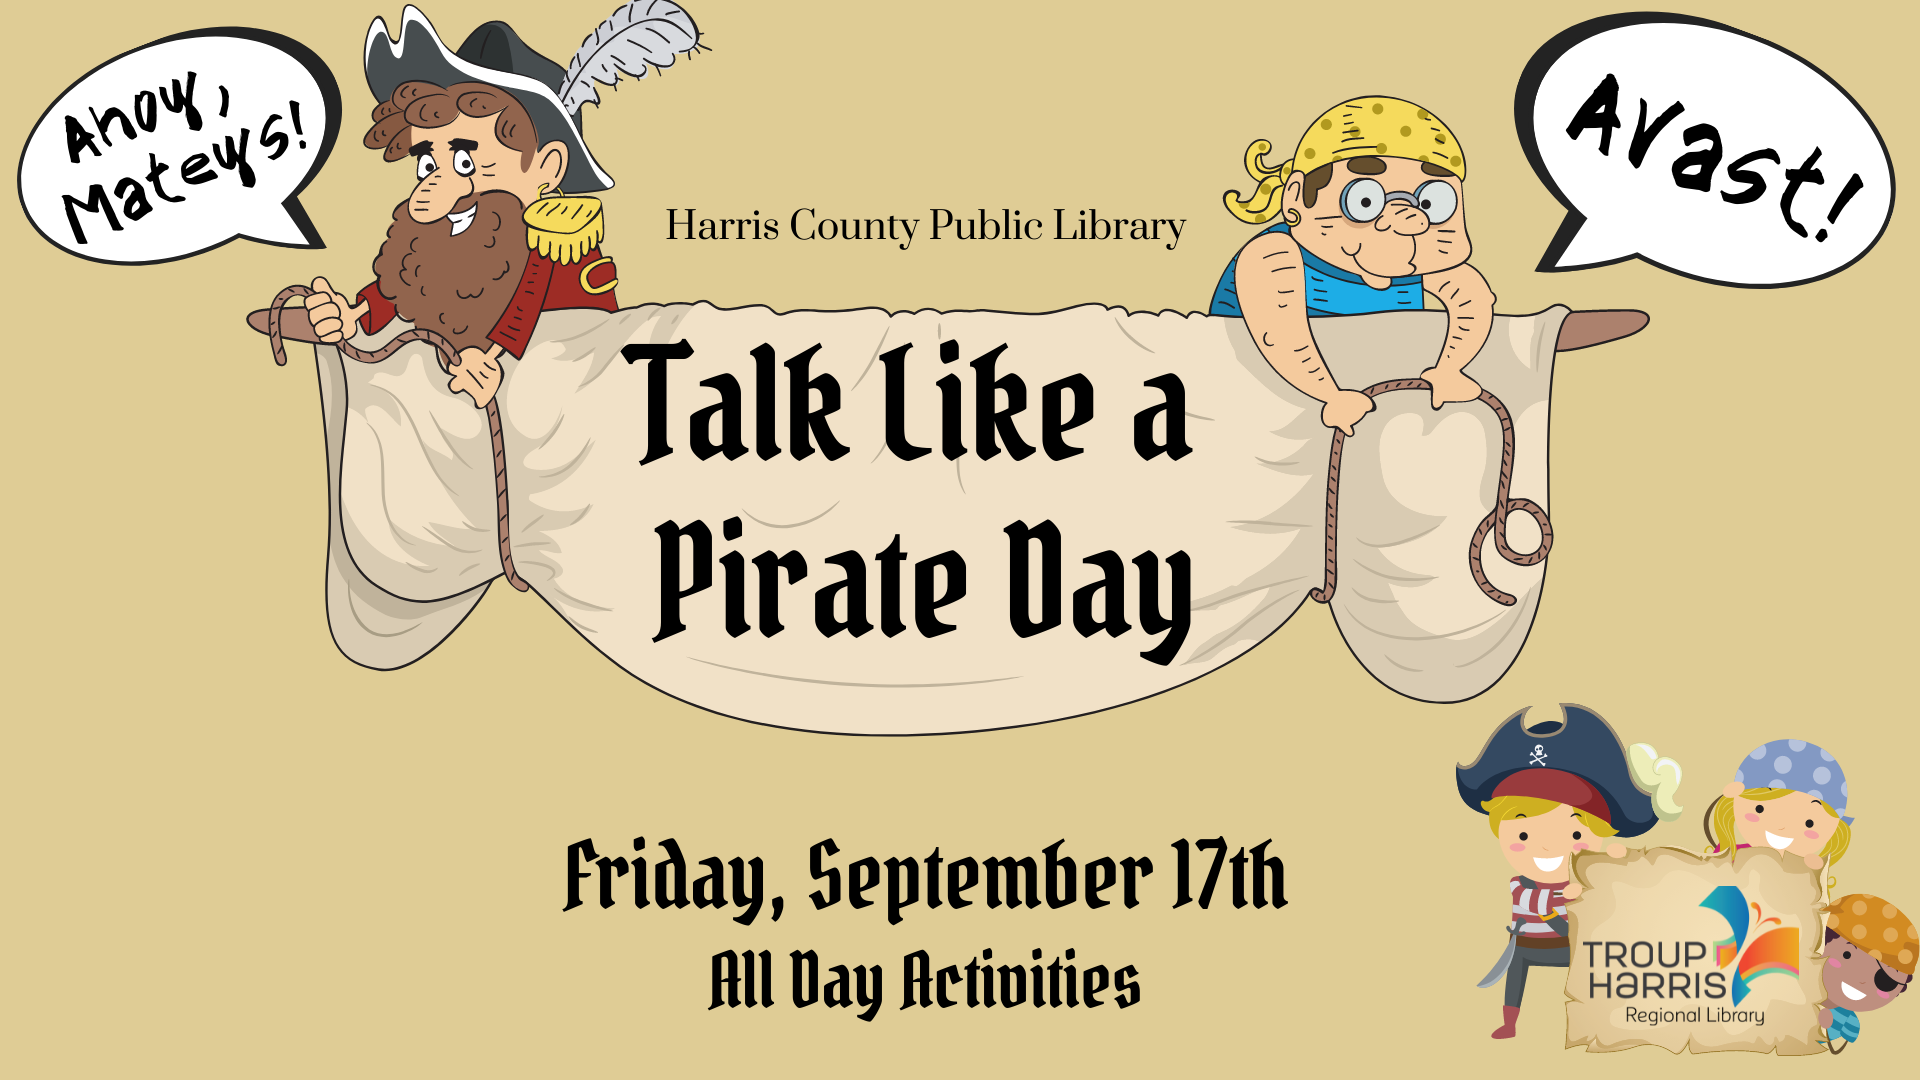 Celebrate Talk Like a Pirate Day with the Harris County Public Library! Learn some new Pirate words and partake in a few Pirate activities!